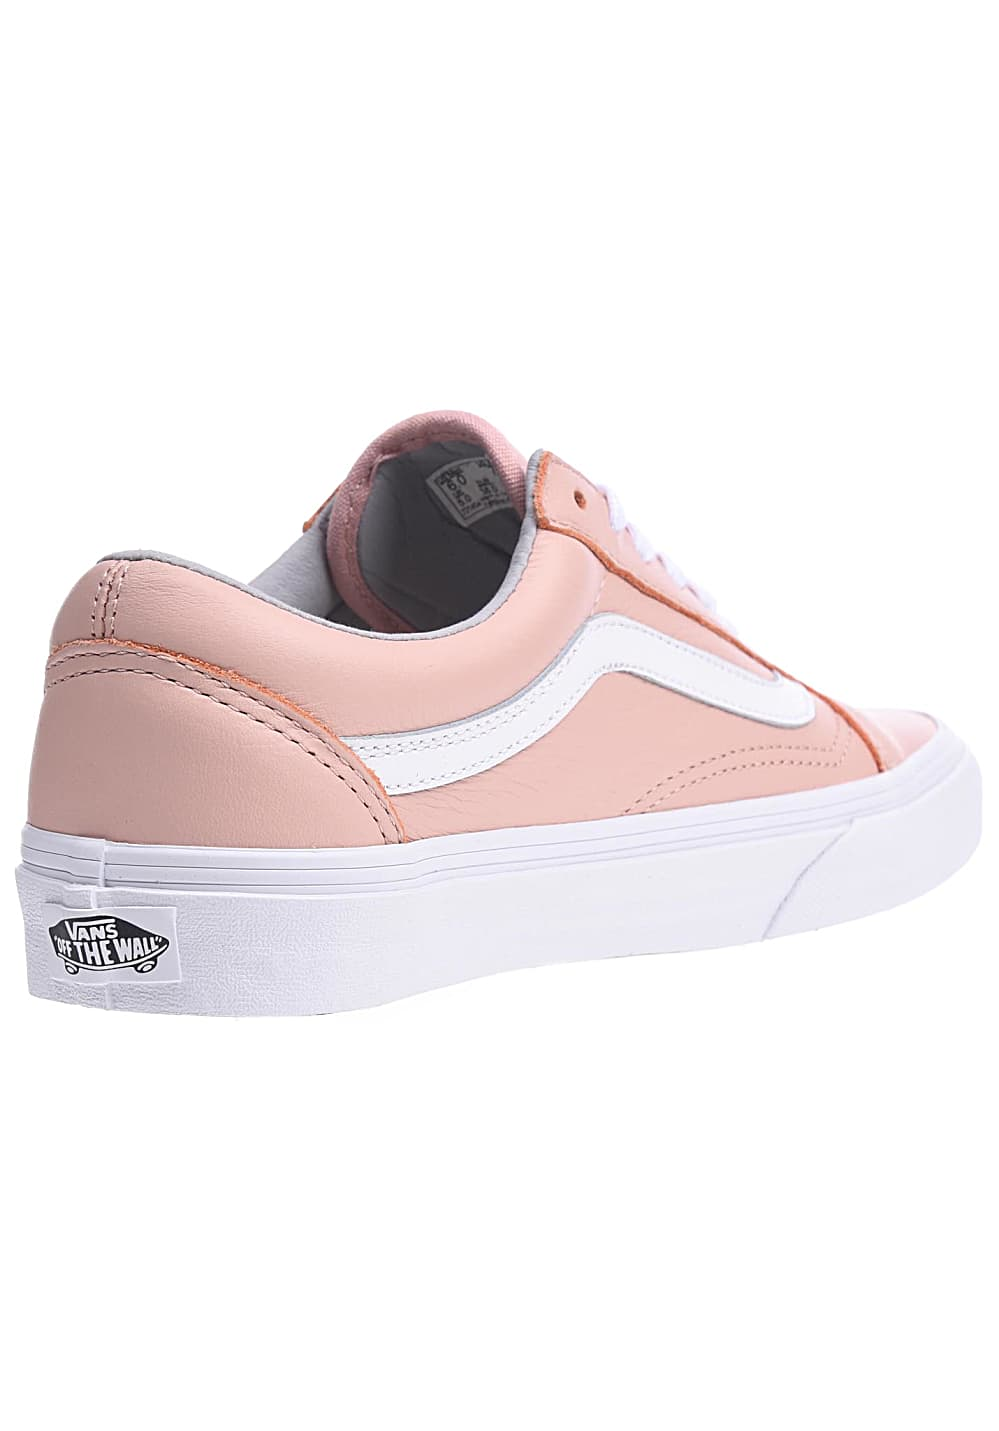 vans old skool rosa pelle